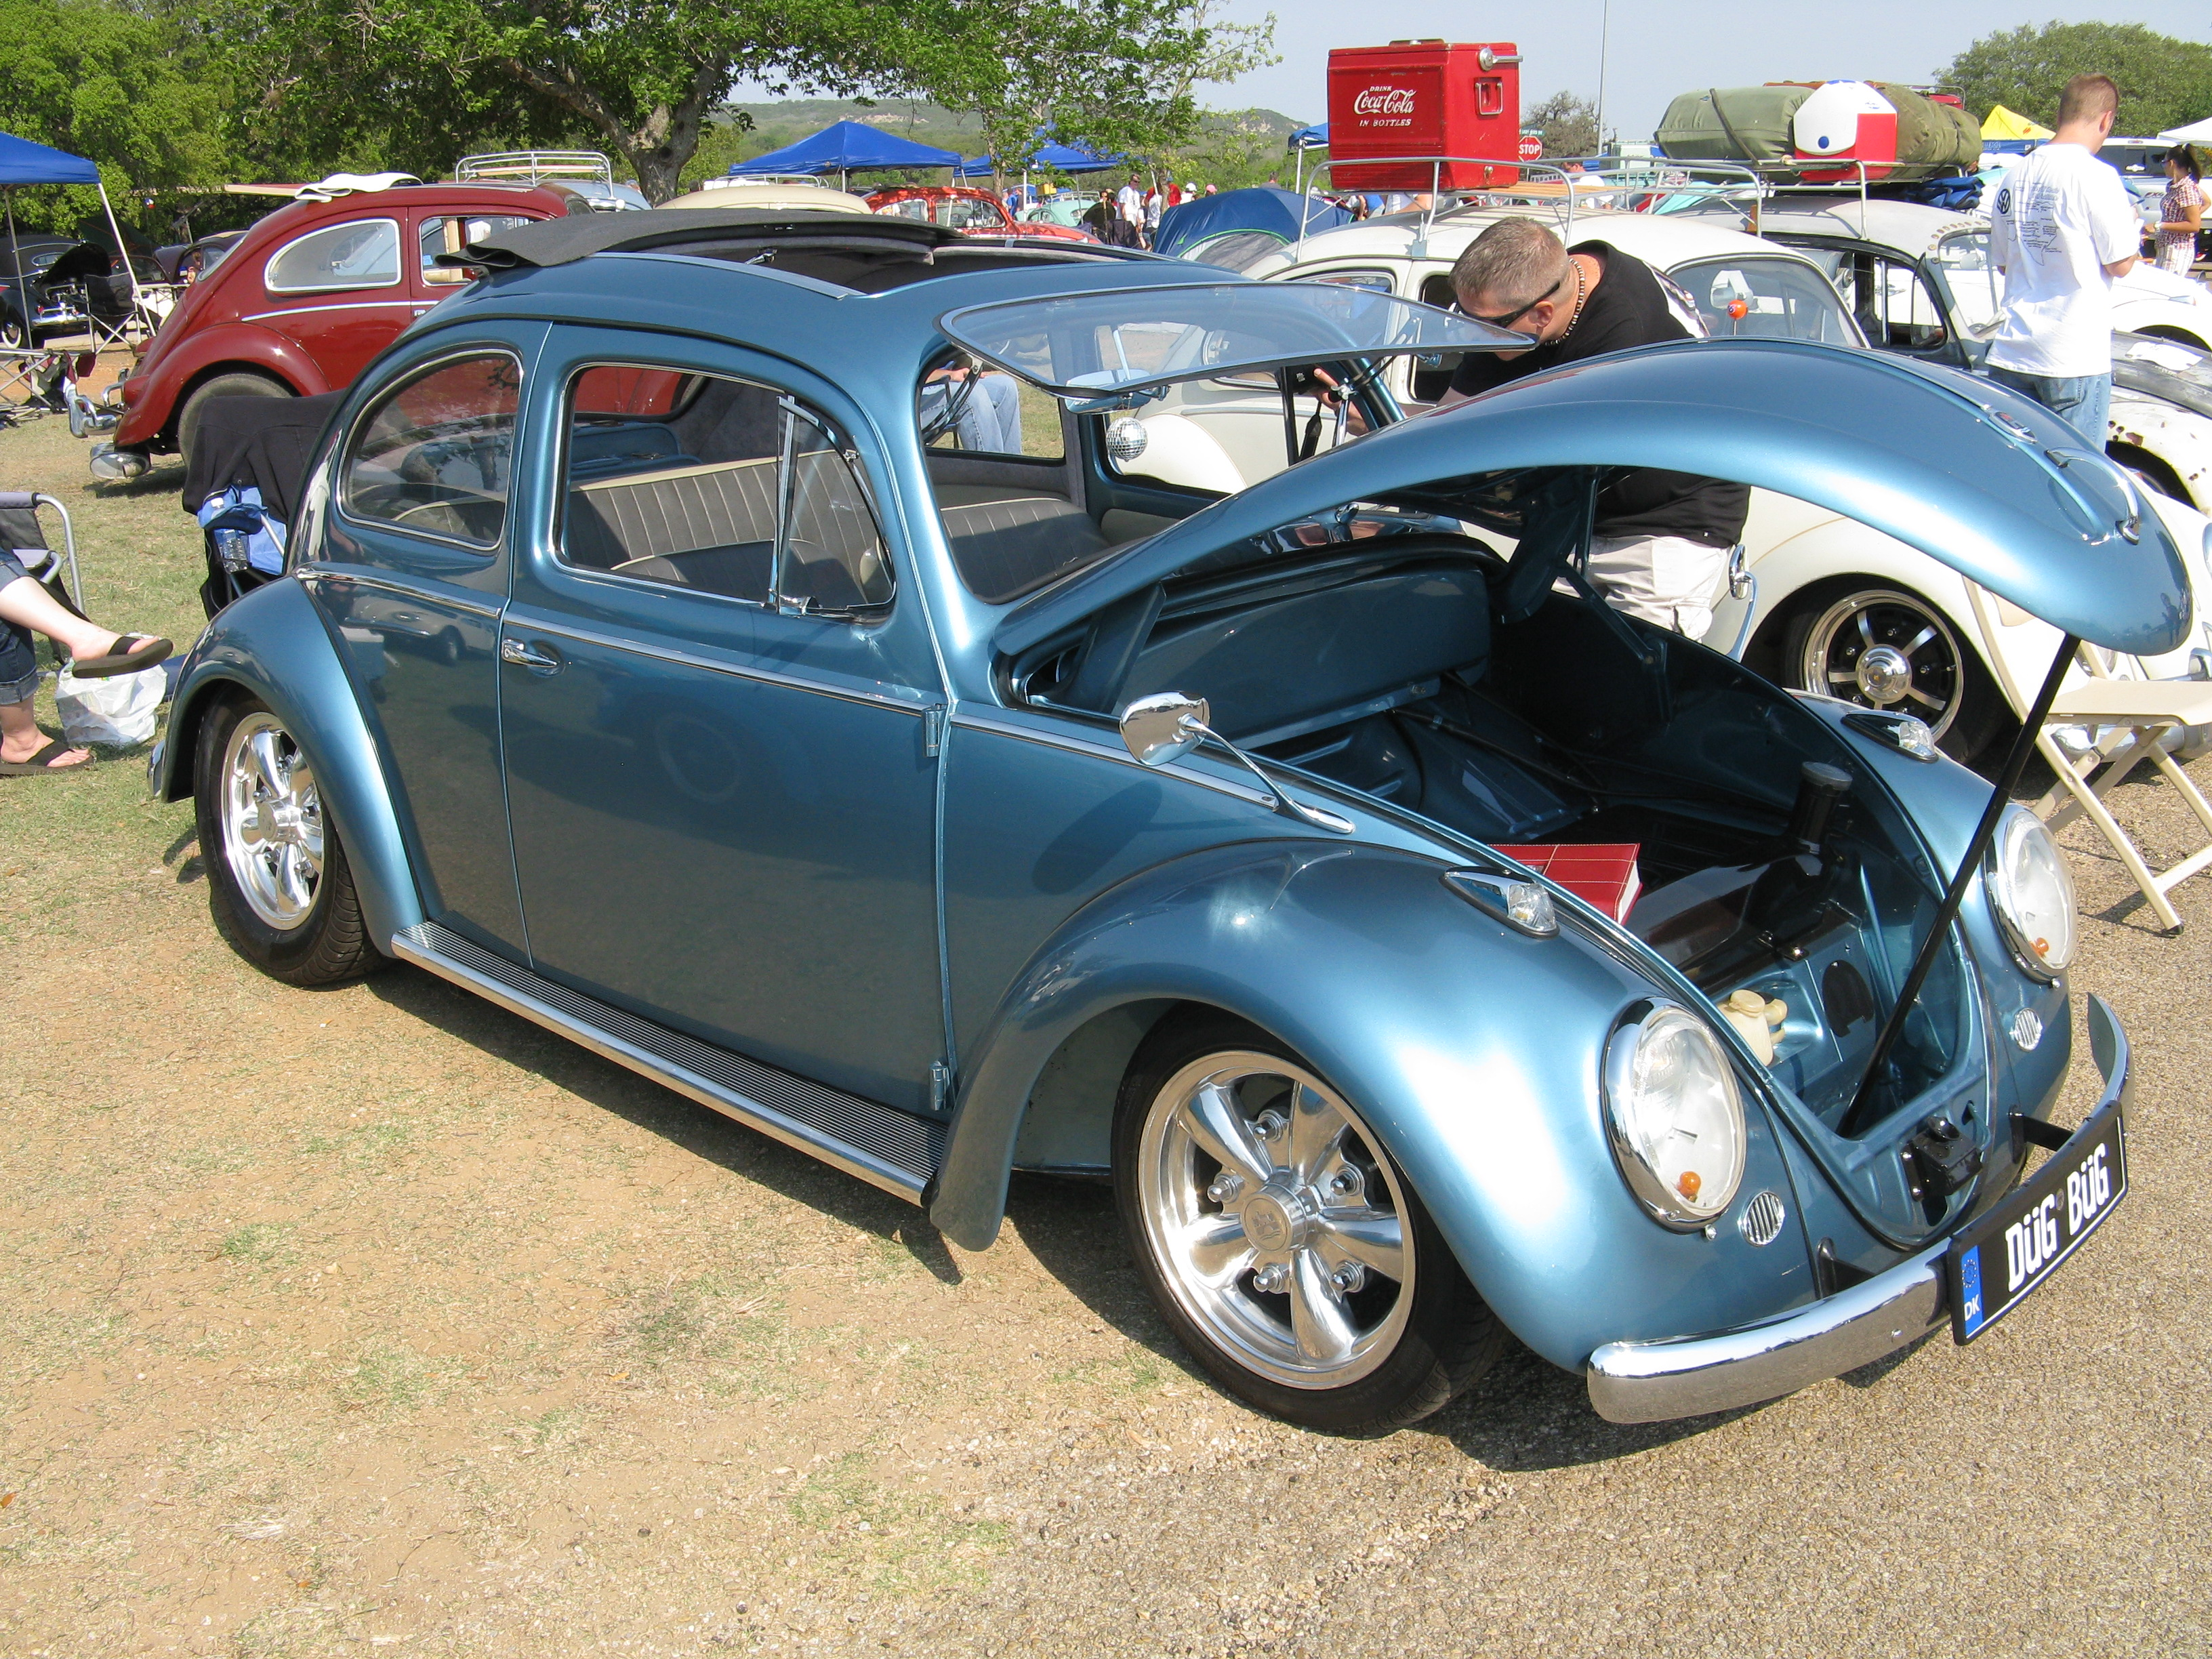 Dug Bug 0327 Texas Vw Classic